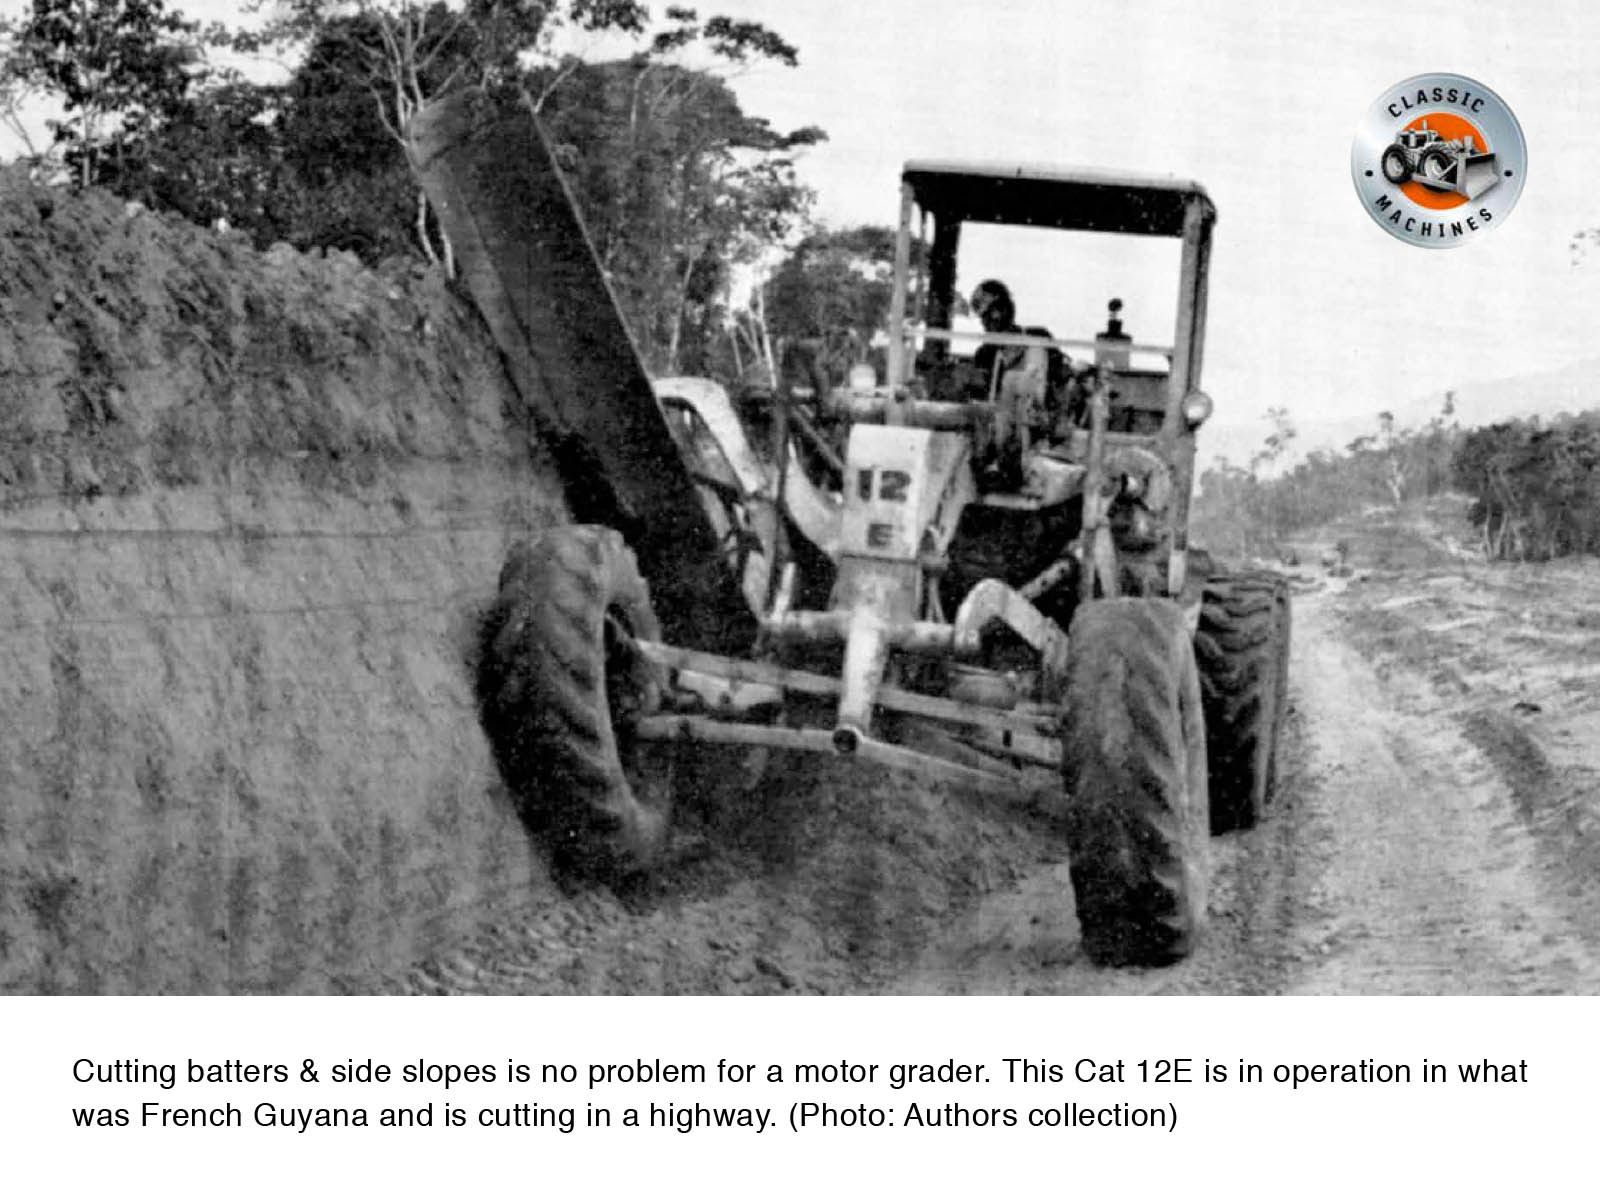 Cutting side slopes is no problem for a motor grader  This